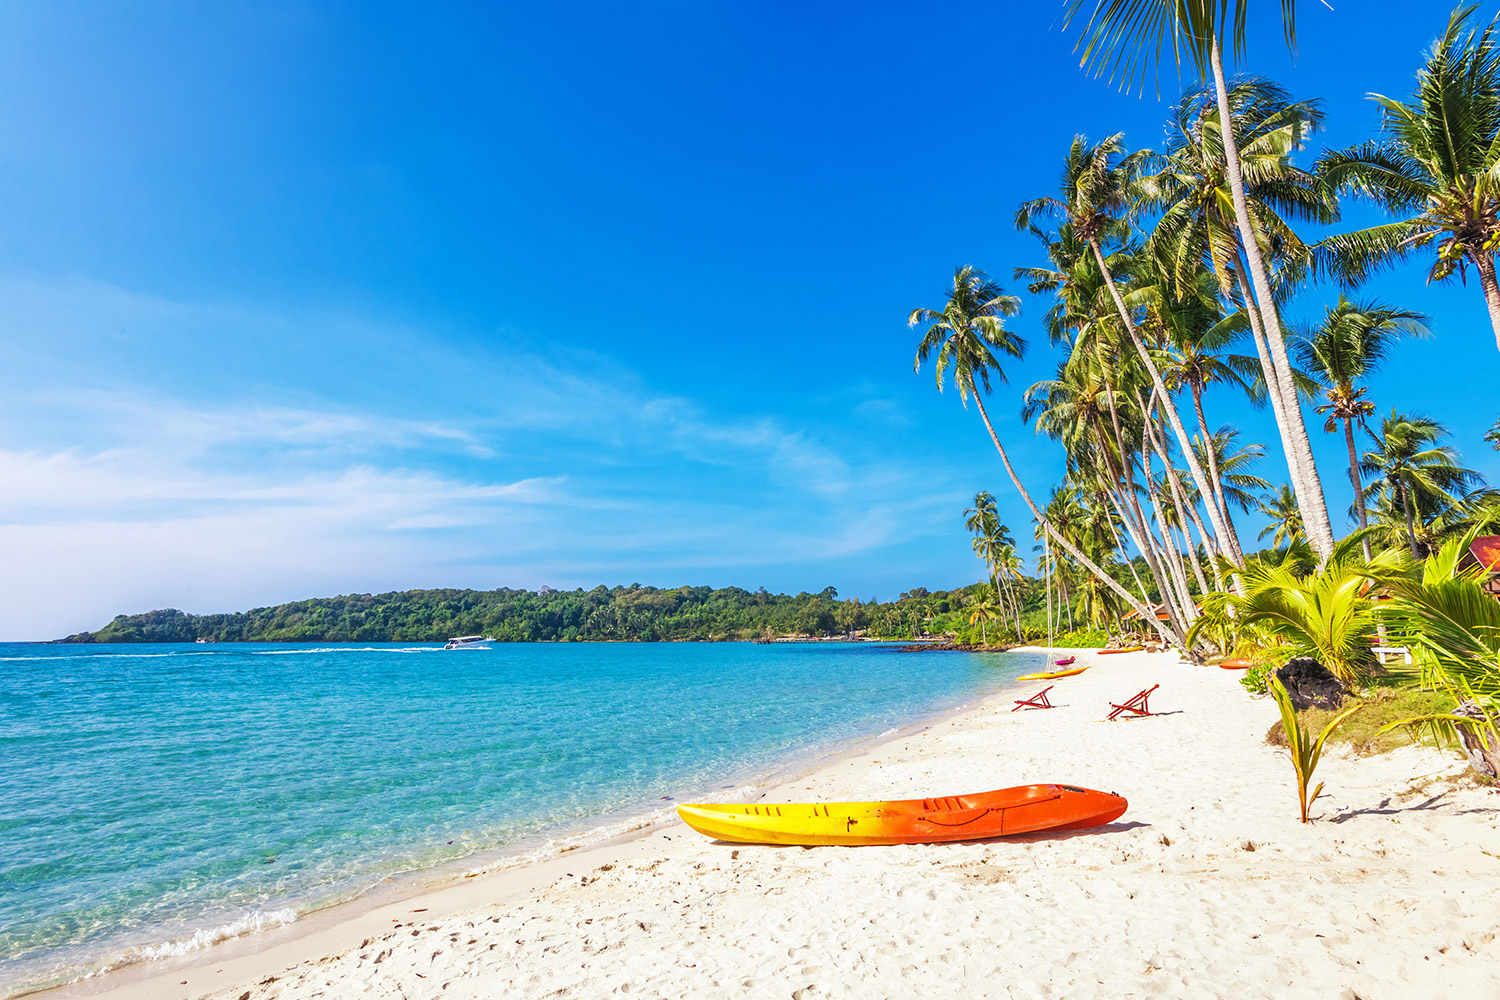 Which Season Is The Most Beautiful In Phu Quoc?